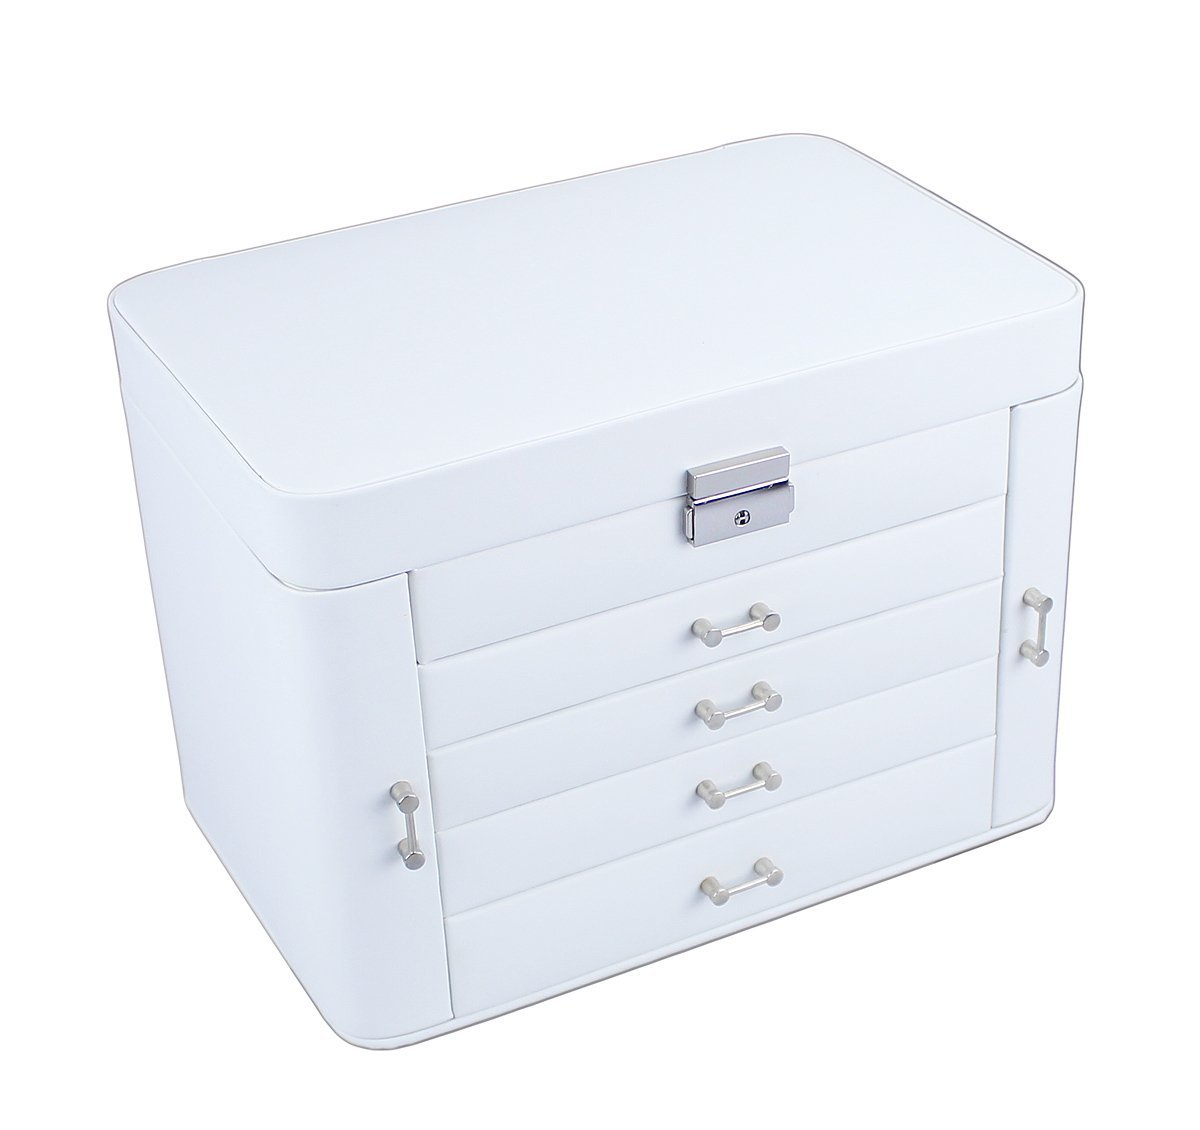 mele extra large empress jewellery box in bonded leather white. Black Bedroom Furniture Sets. Home Design Ideas